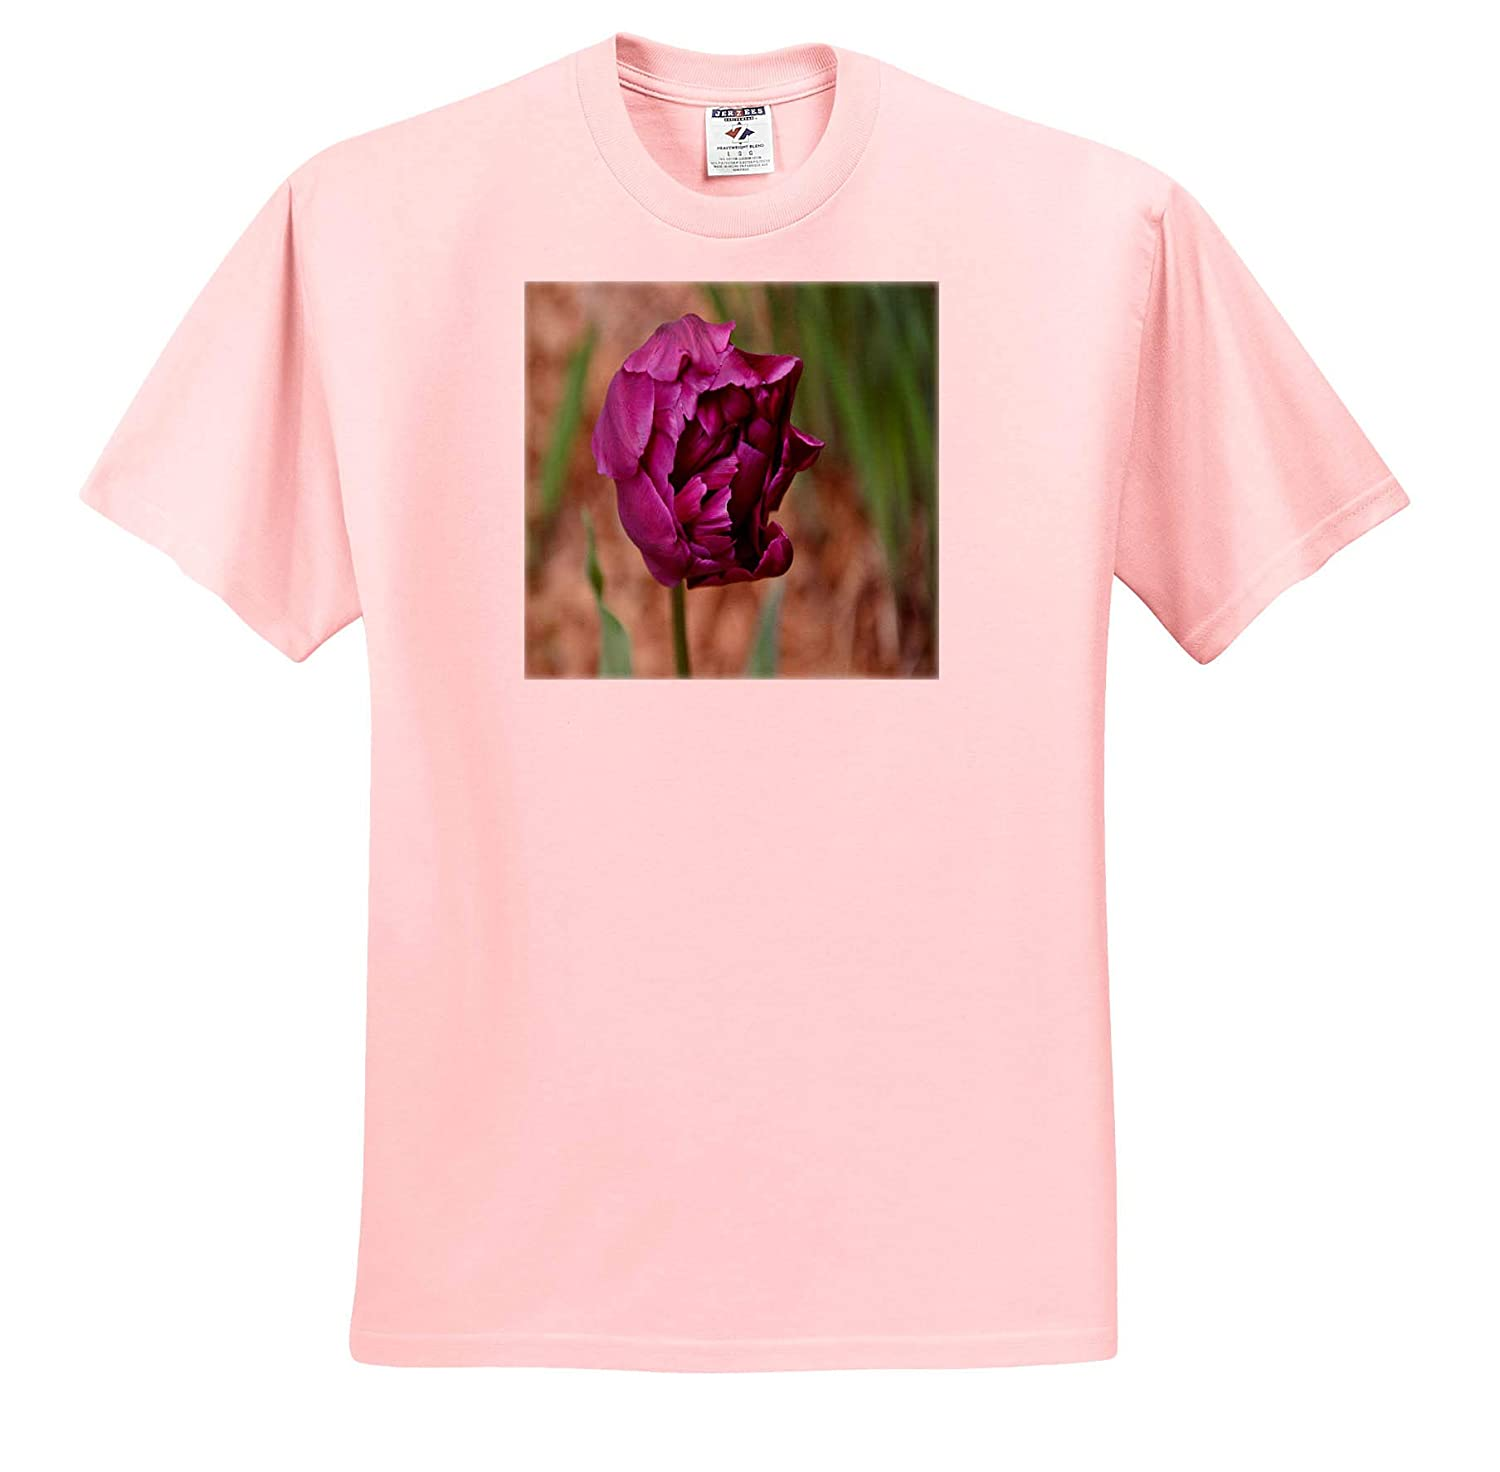 Adult T-Shirt XL 3dRose Dreamscapes by Leslie Flowers ts/_314247 Double Purple Tulip Blooming